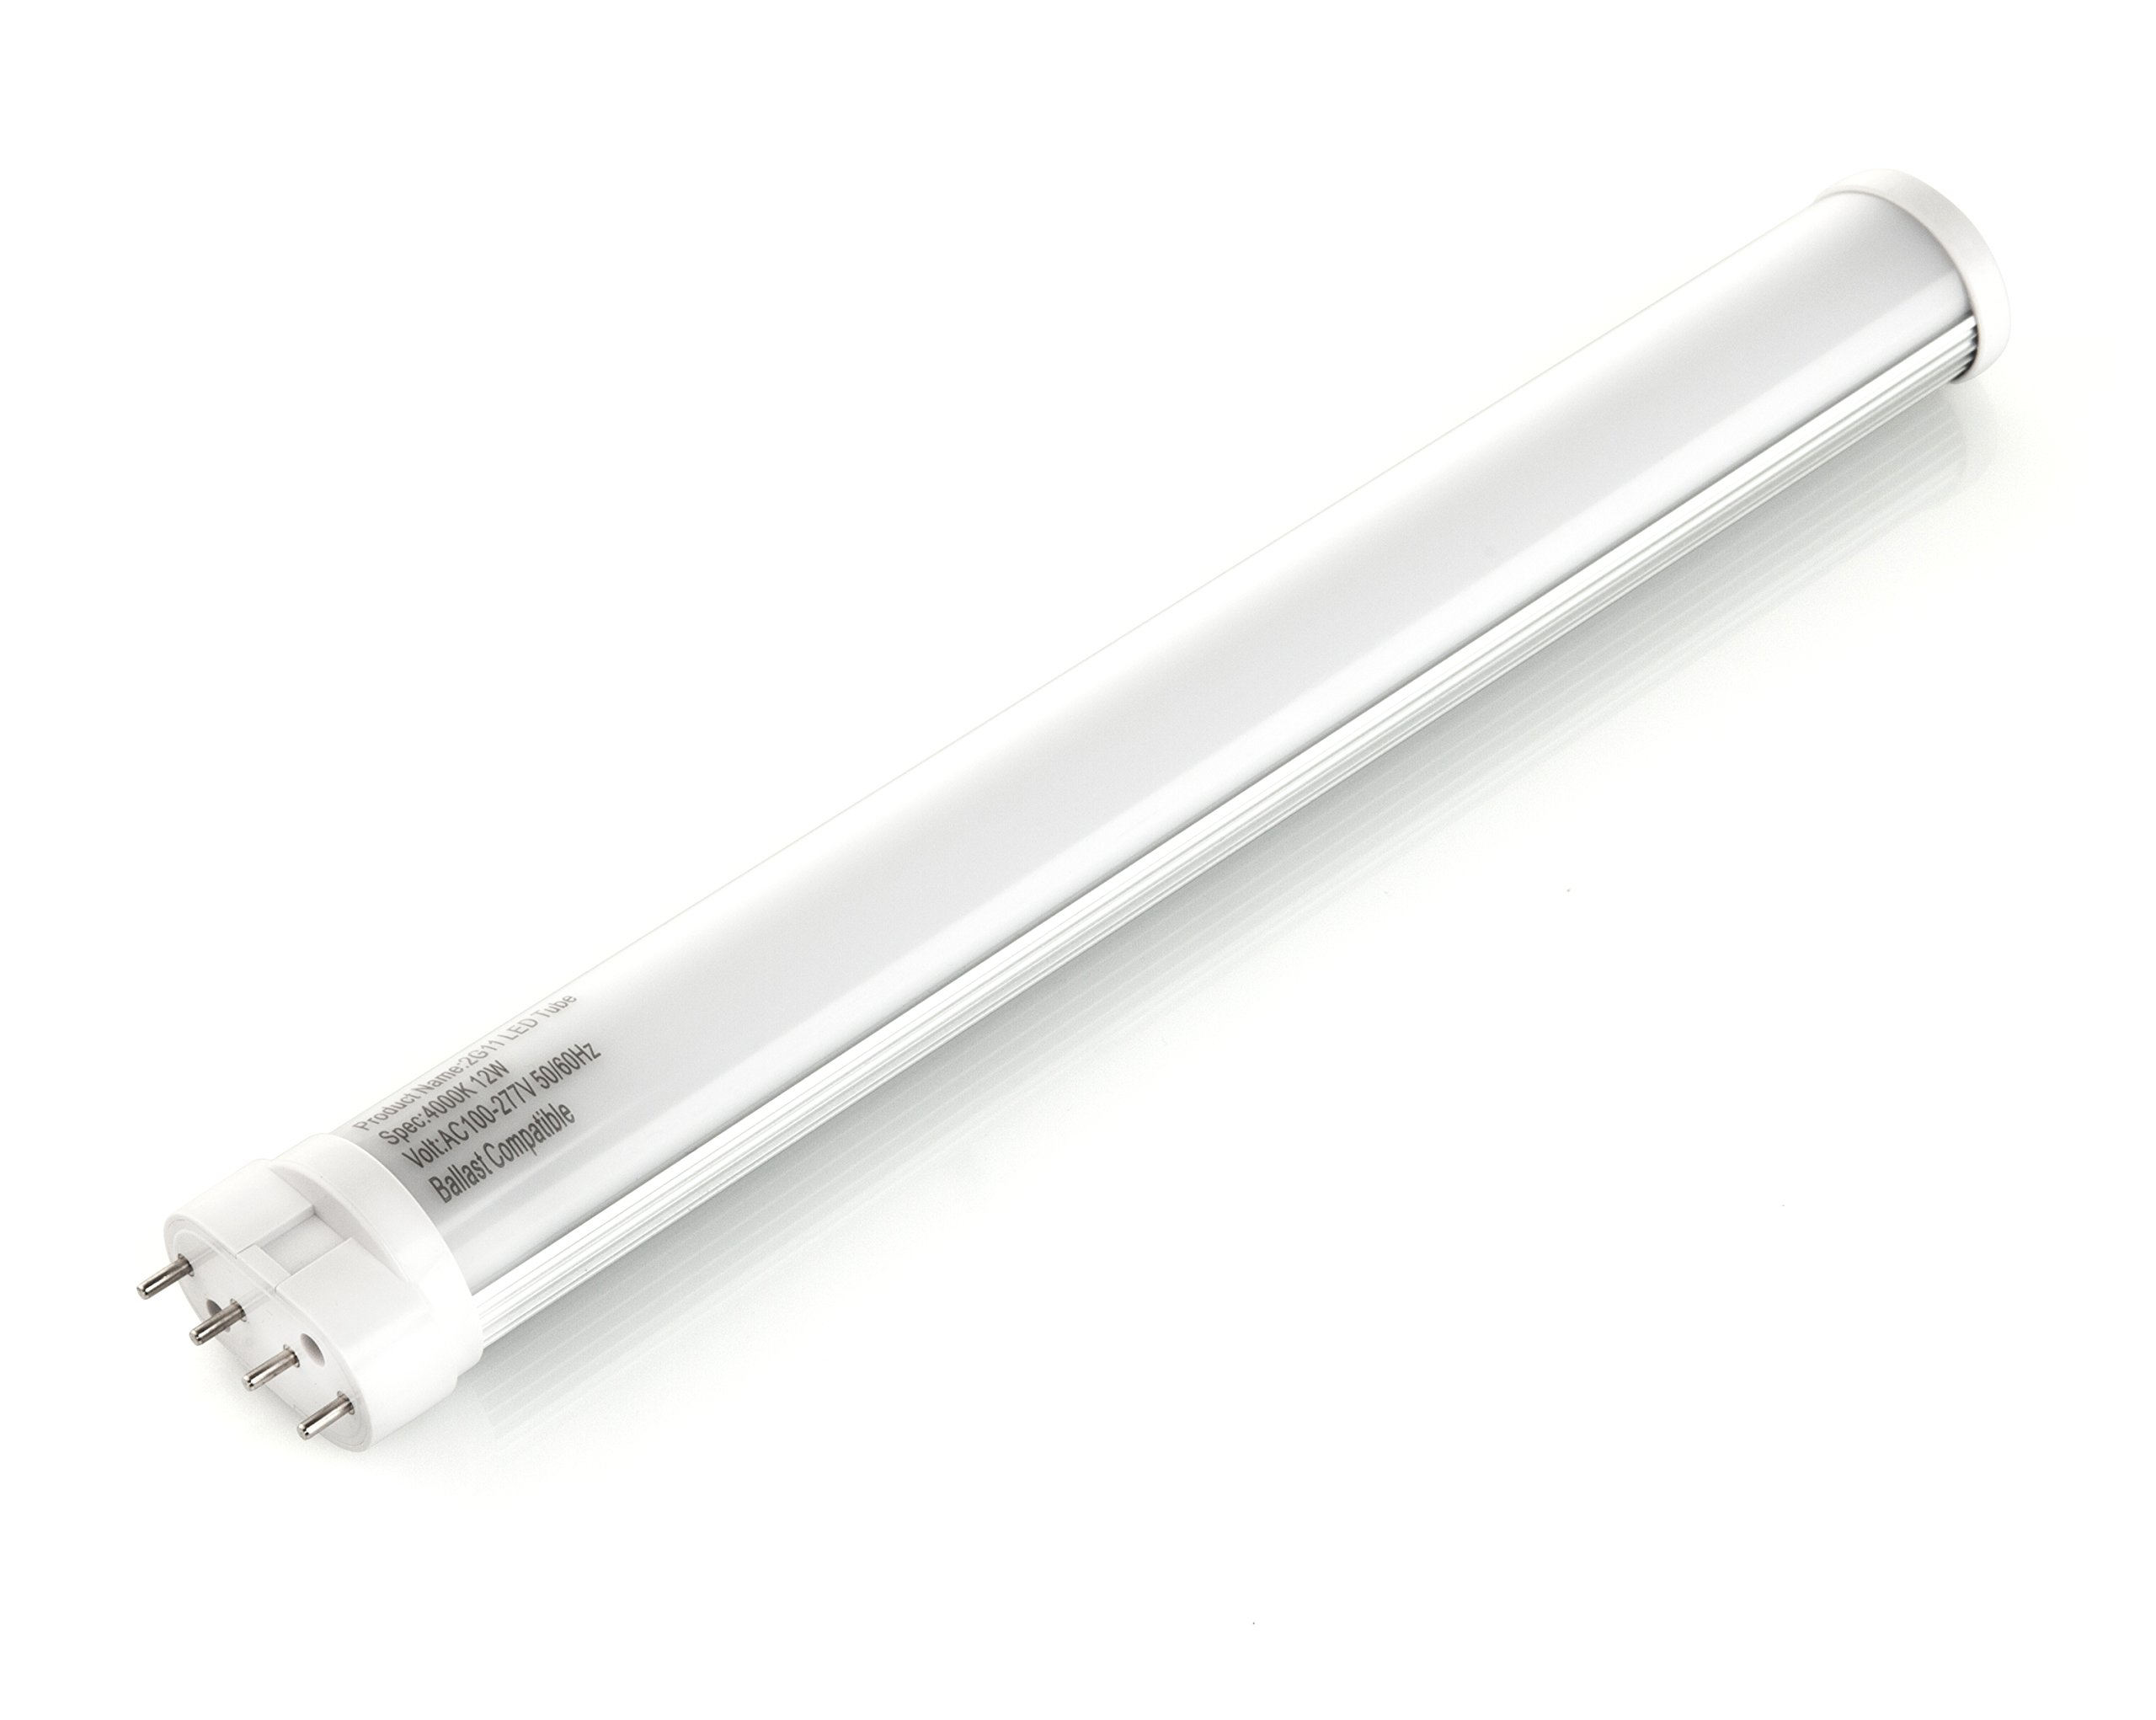 Hyperikon LED 2G11 Light, 12W (24W Fluorescent Equivalent), 12.6 inches, 1220 lumen, 5000K (Crystal White Glow), 120-277v, Ballast Compatible